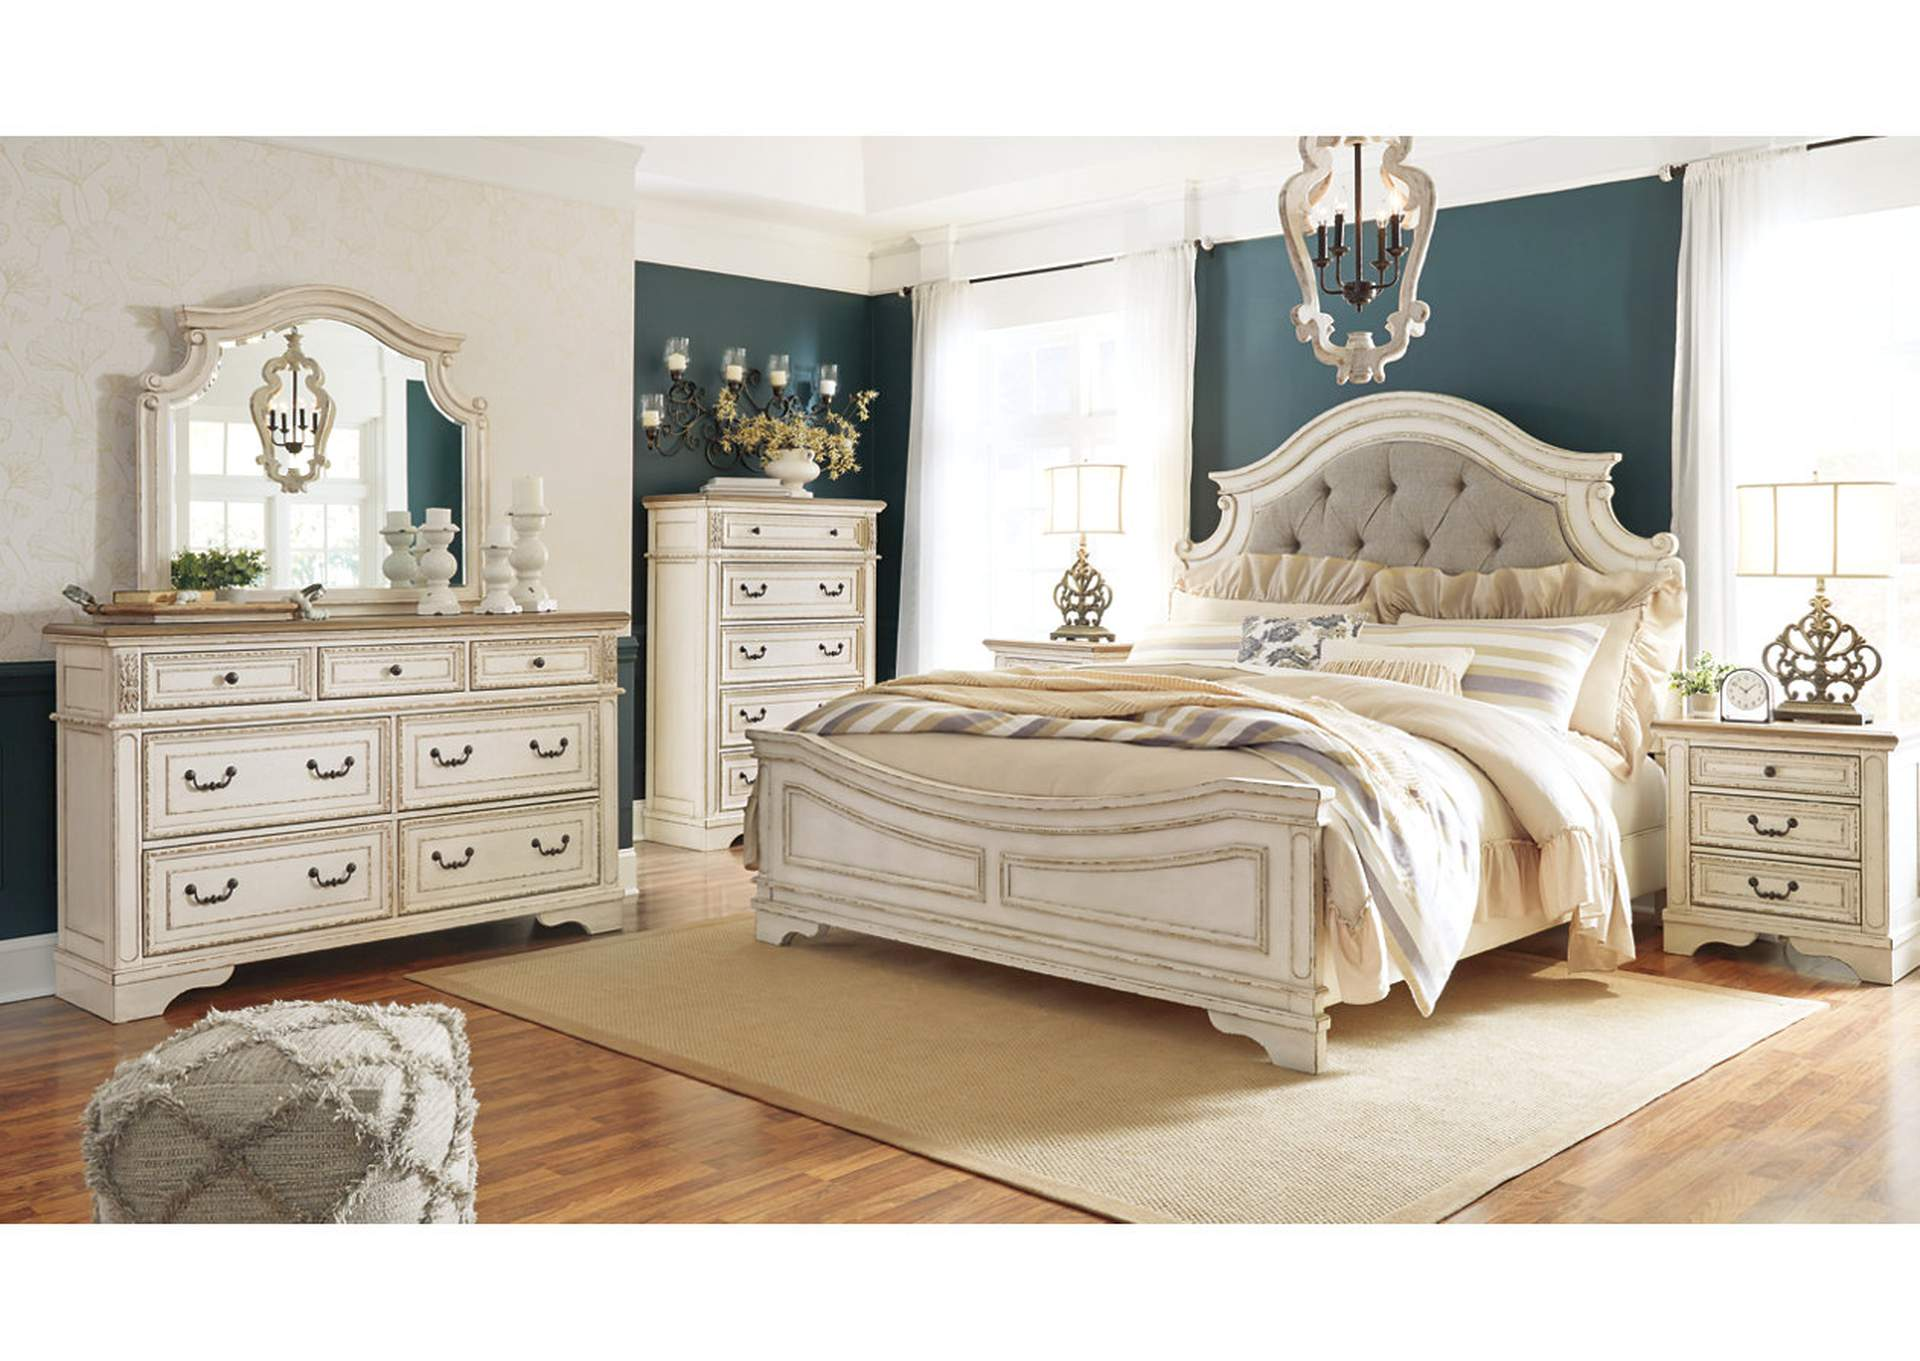 Realyn Chipped White King Panel Bed,Signature Design By Ashley